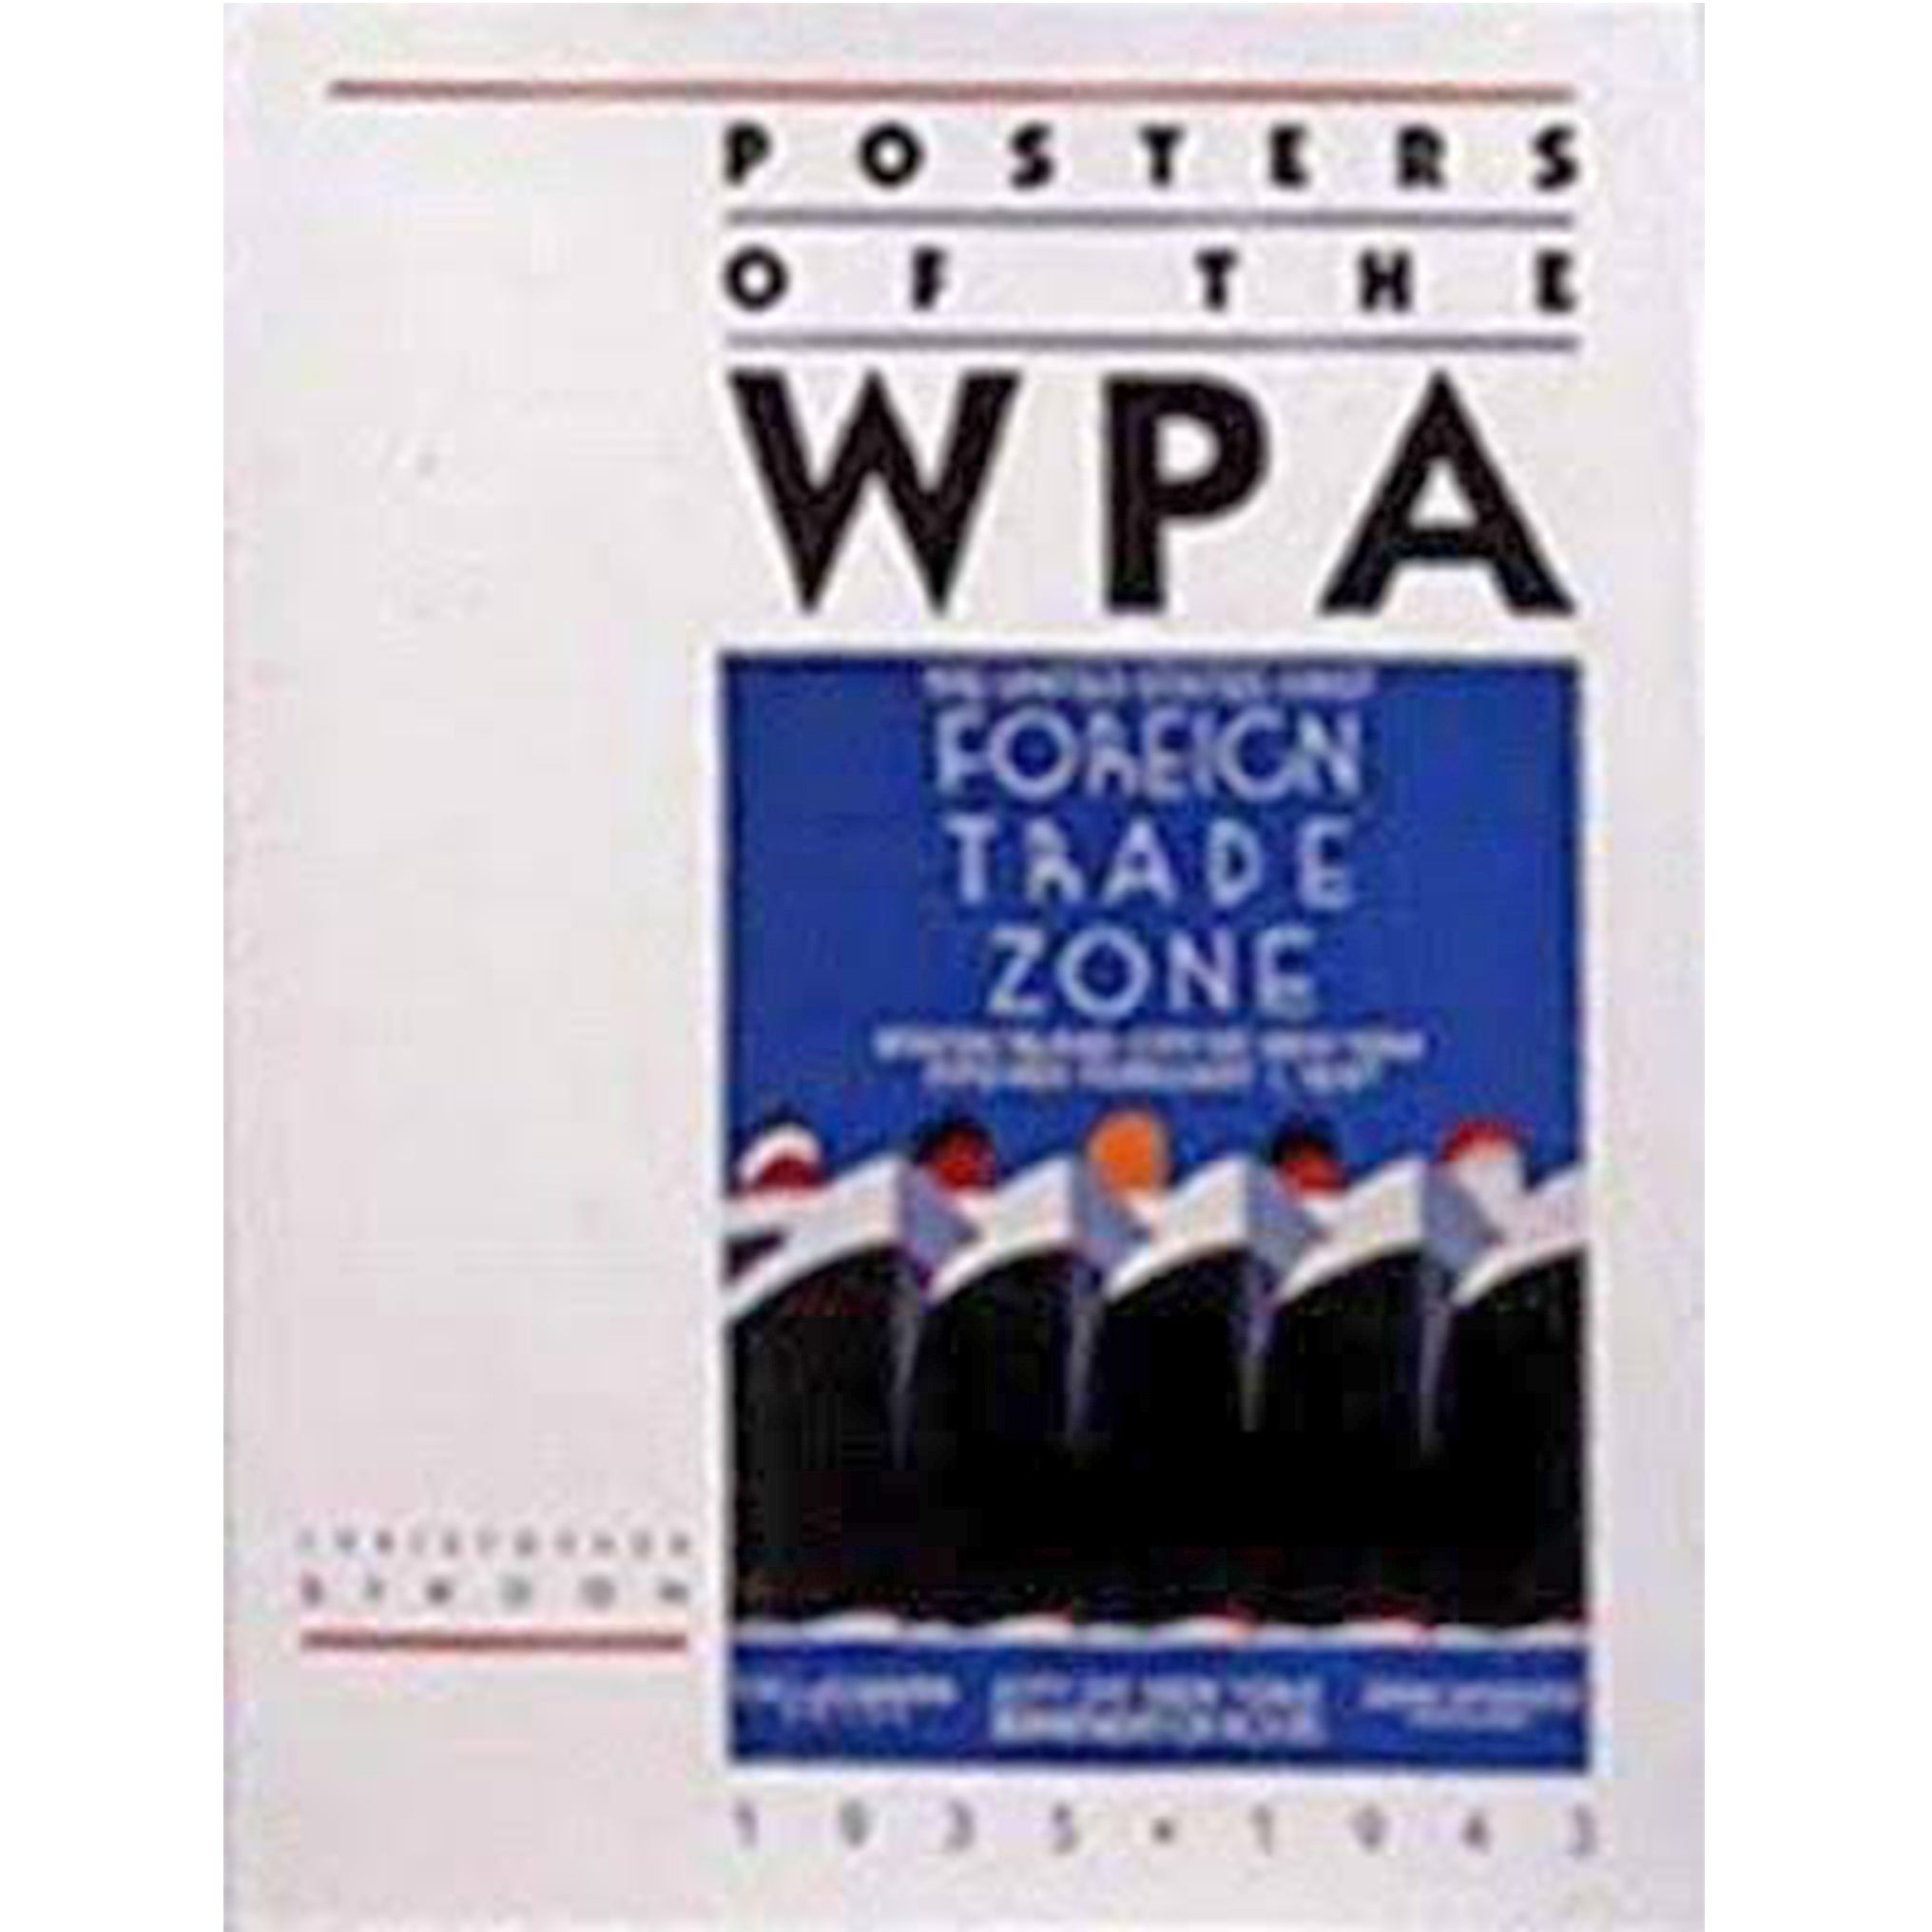 POSTERS OF THE WPA by Christoper Denoon 1987